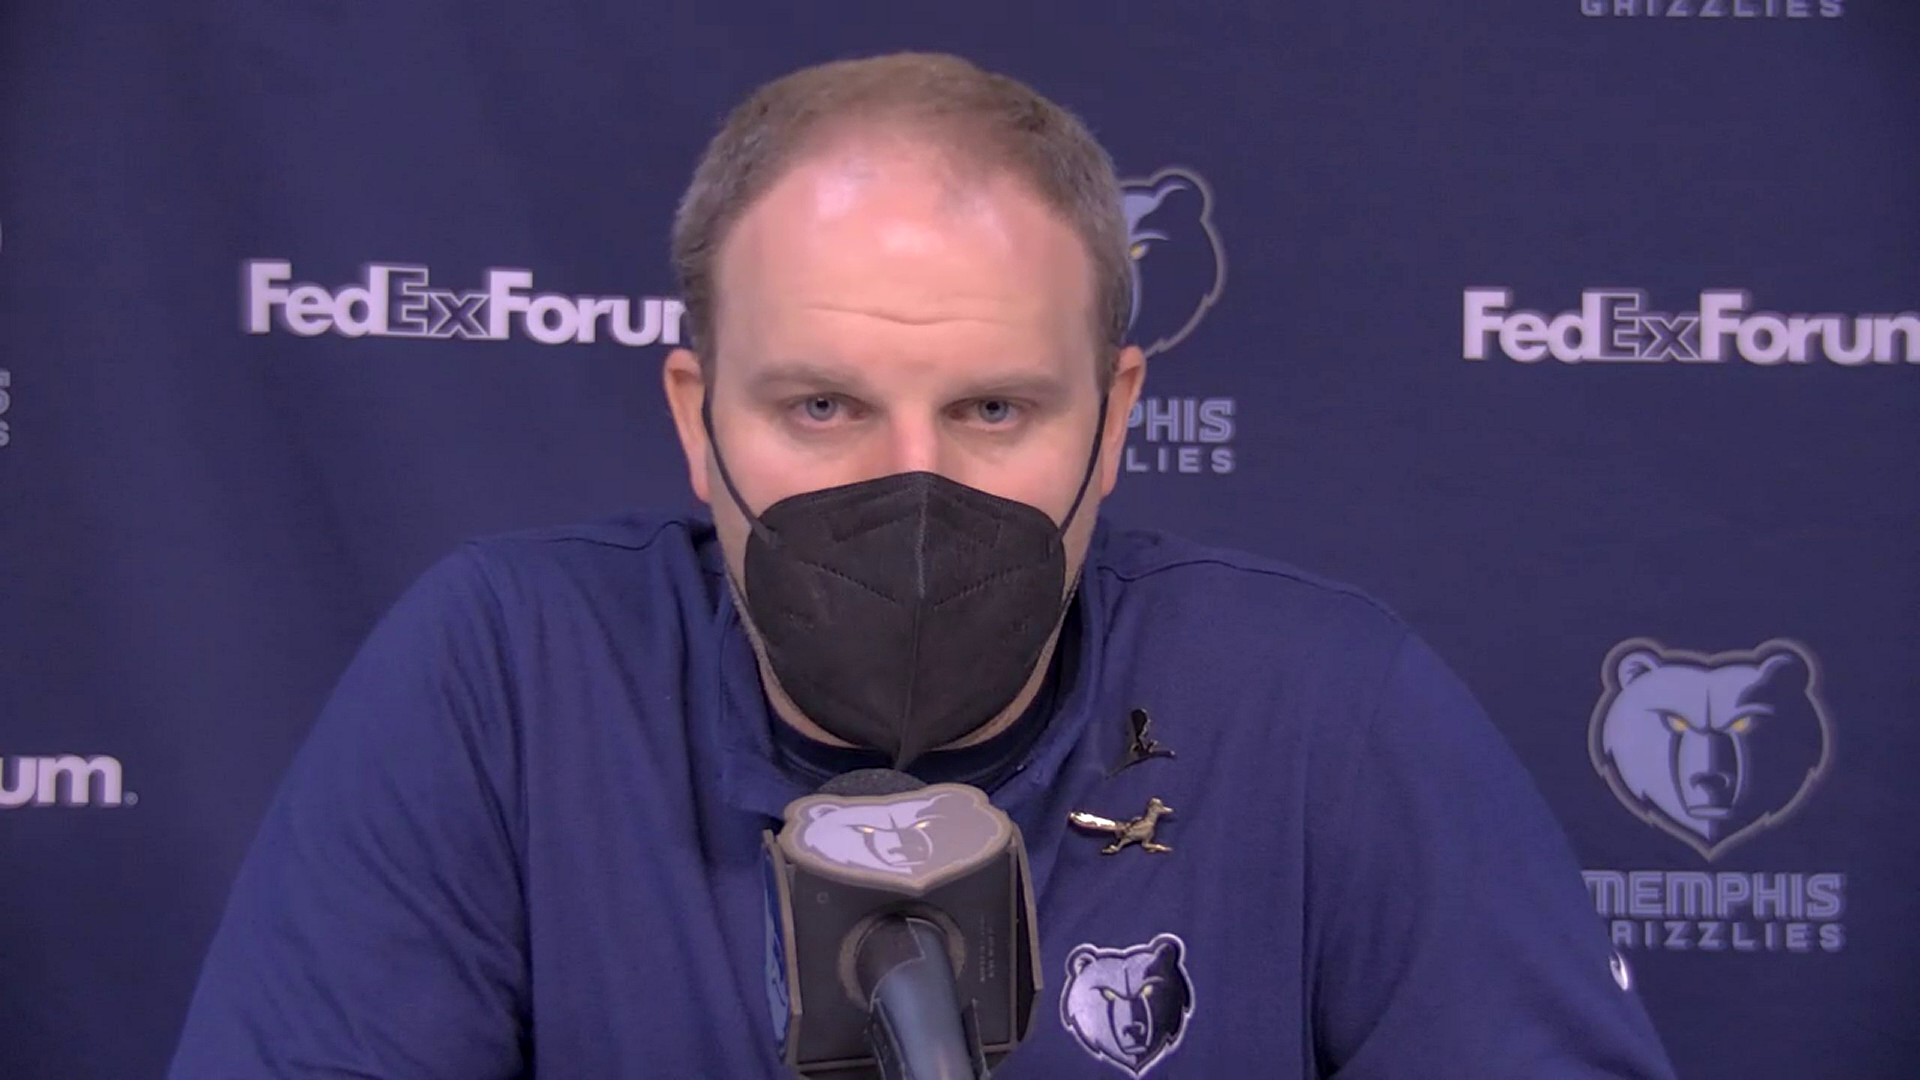 MEMvMIL: Postgame press conference 3.4.21